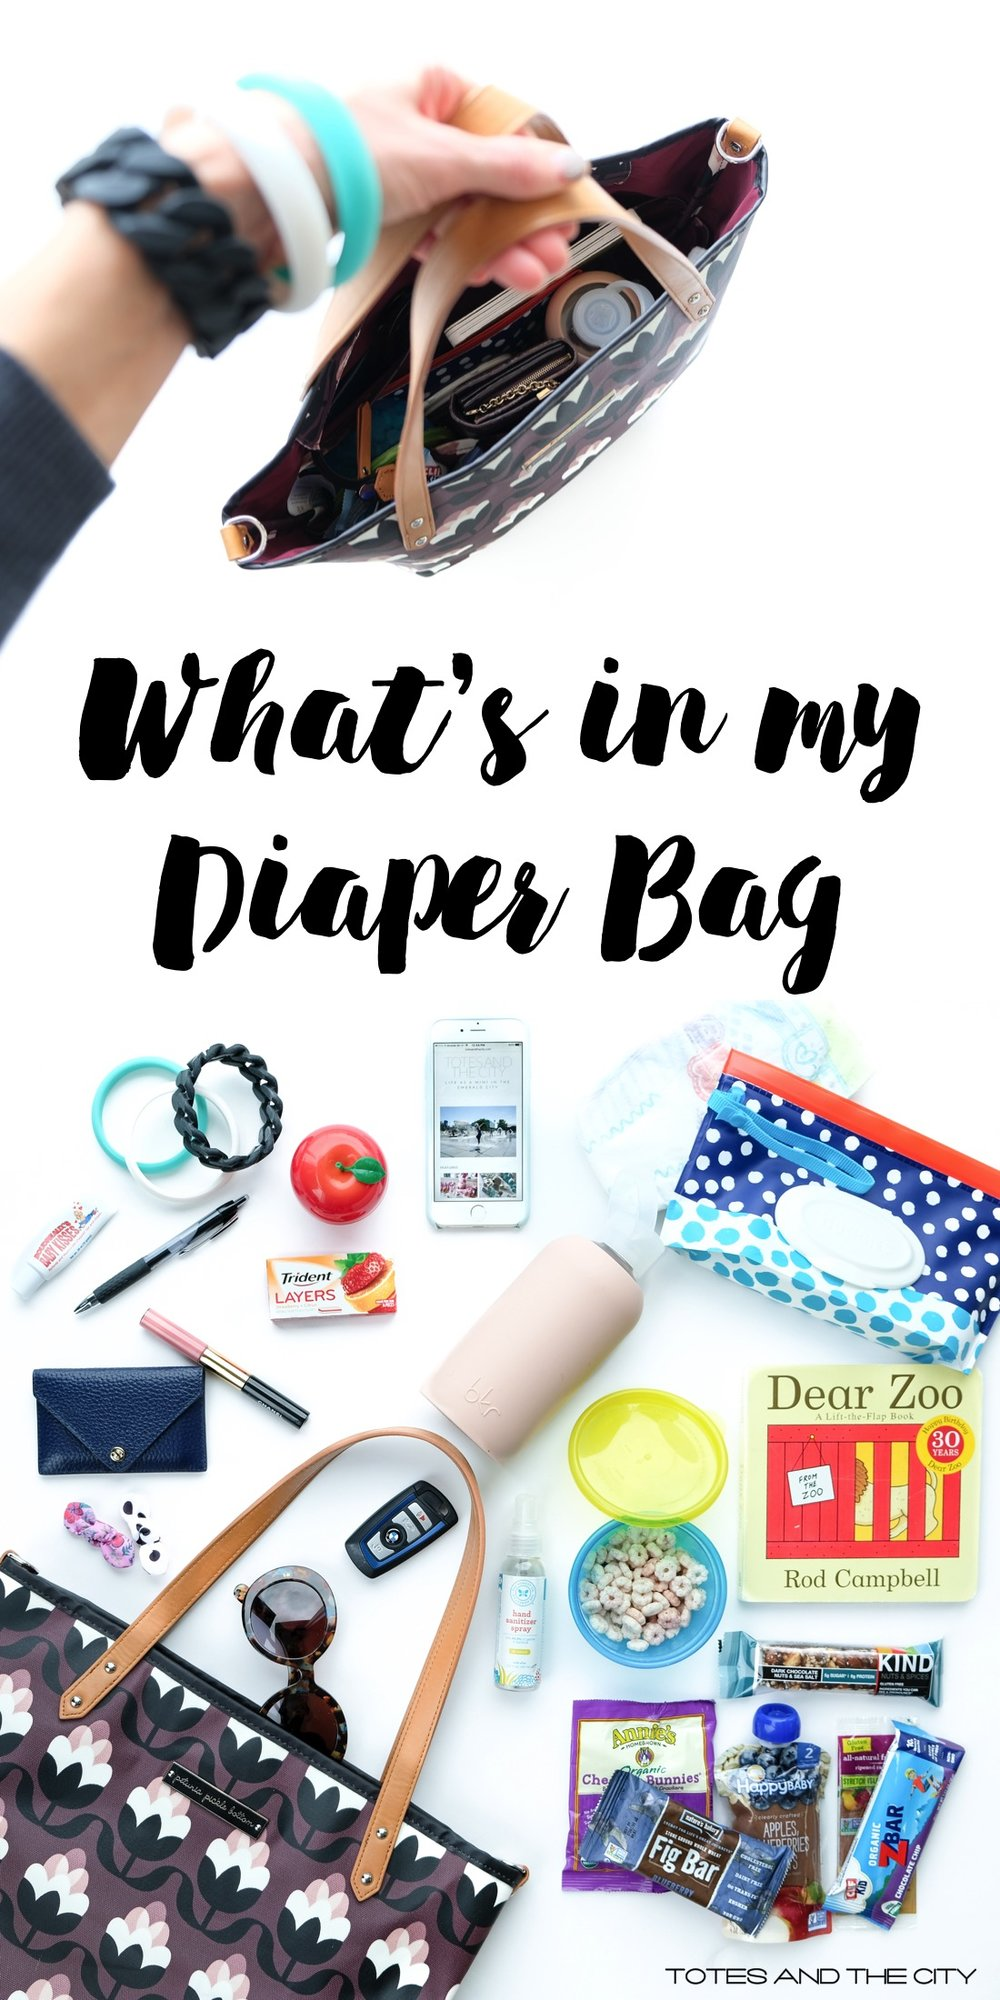 What's in my Diaper Bag | Blog Post by Totes and the City